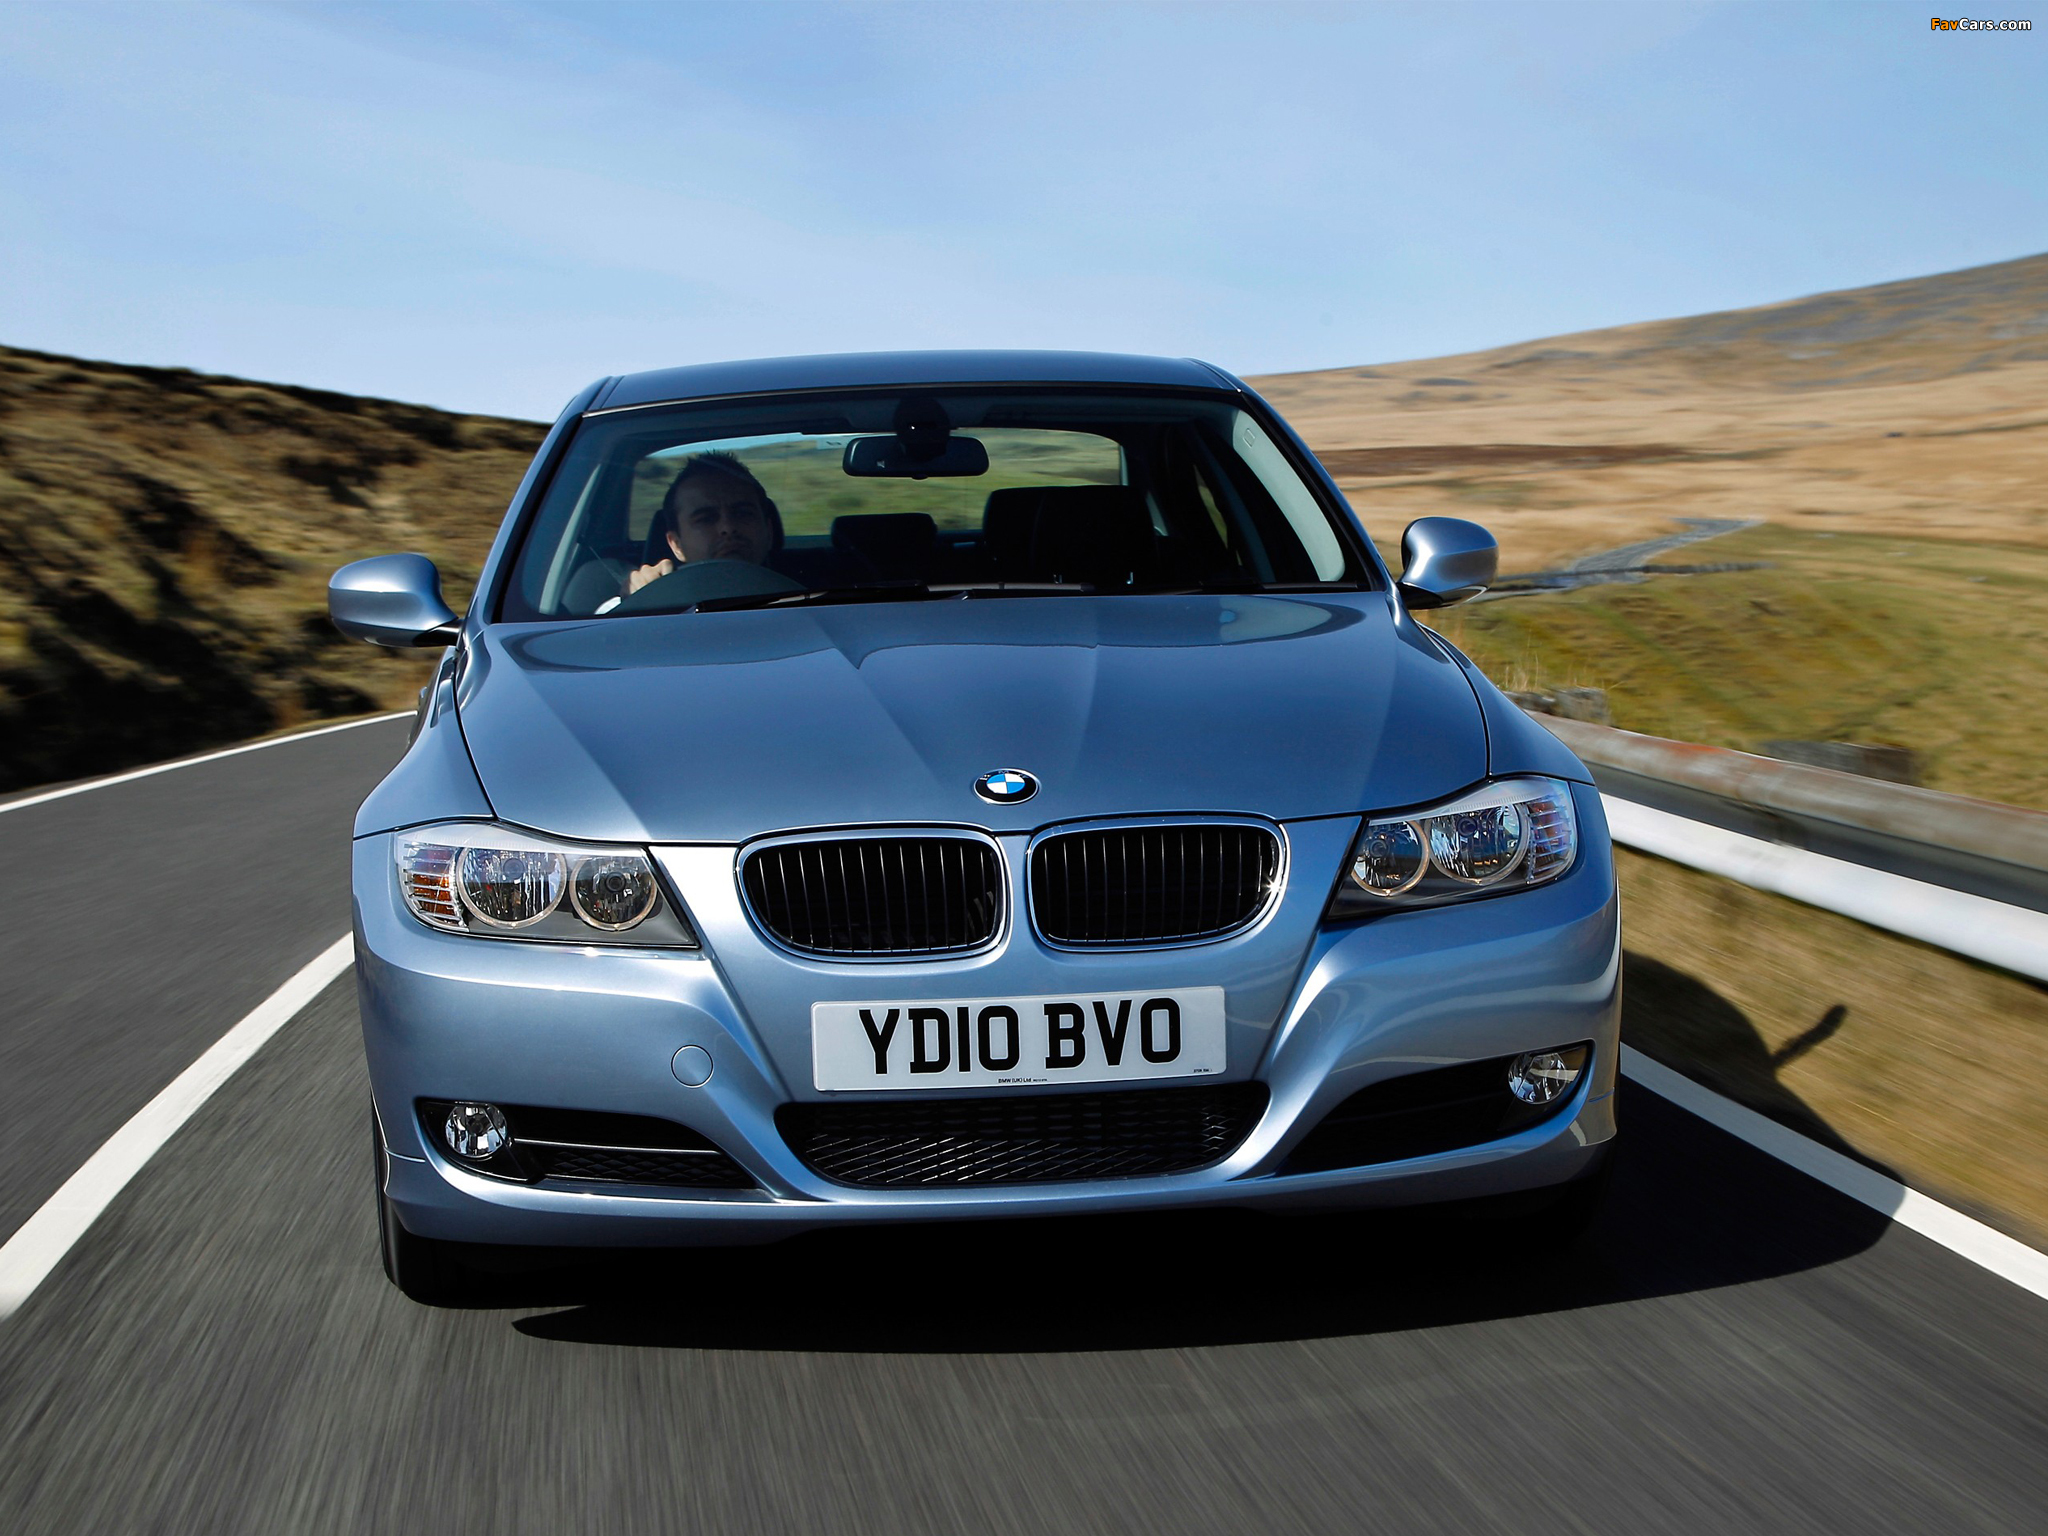 Images of bmw 320d efficientdynamics edition e90 2009 11 - Bmw 320d Efficientdynamics Edition Uk Spec E90 2009 11 Wallpapers 2048